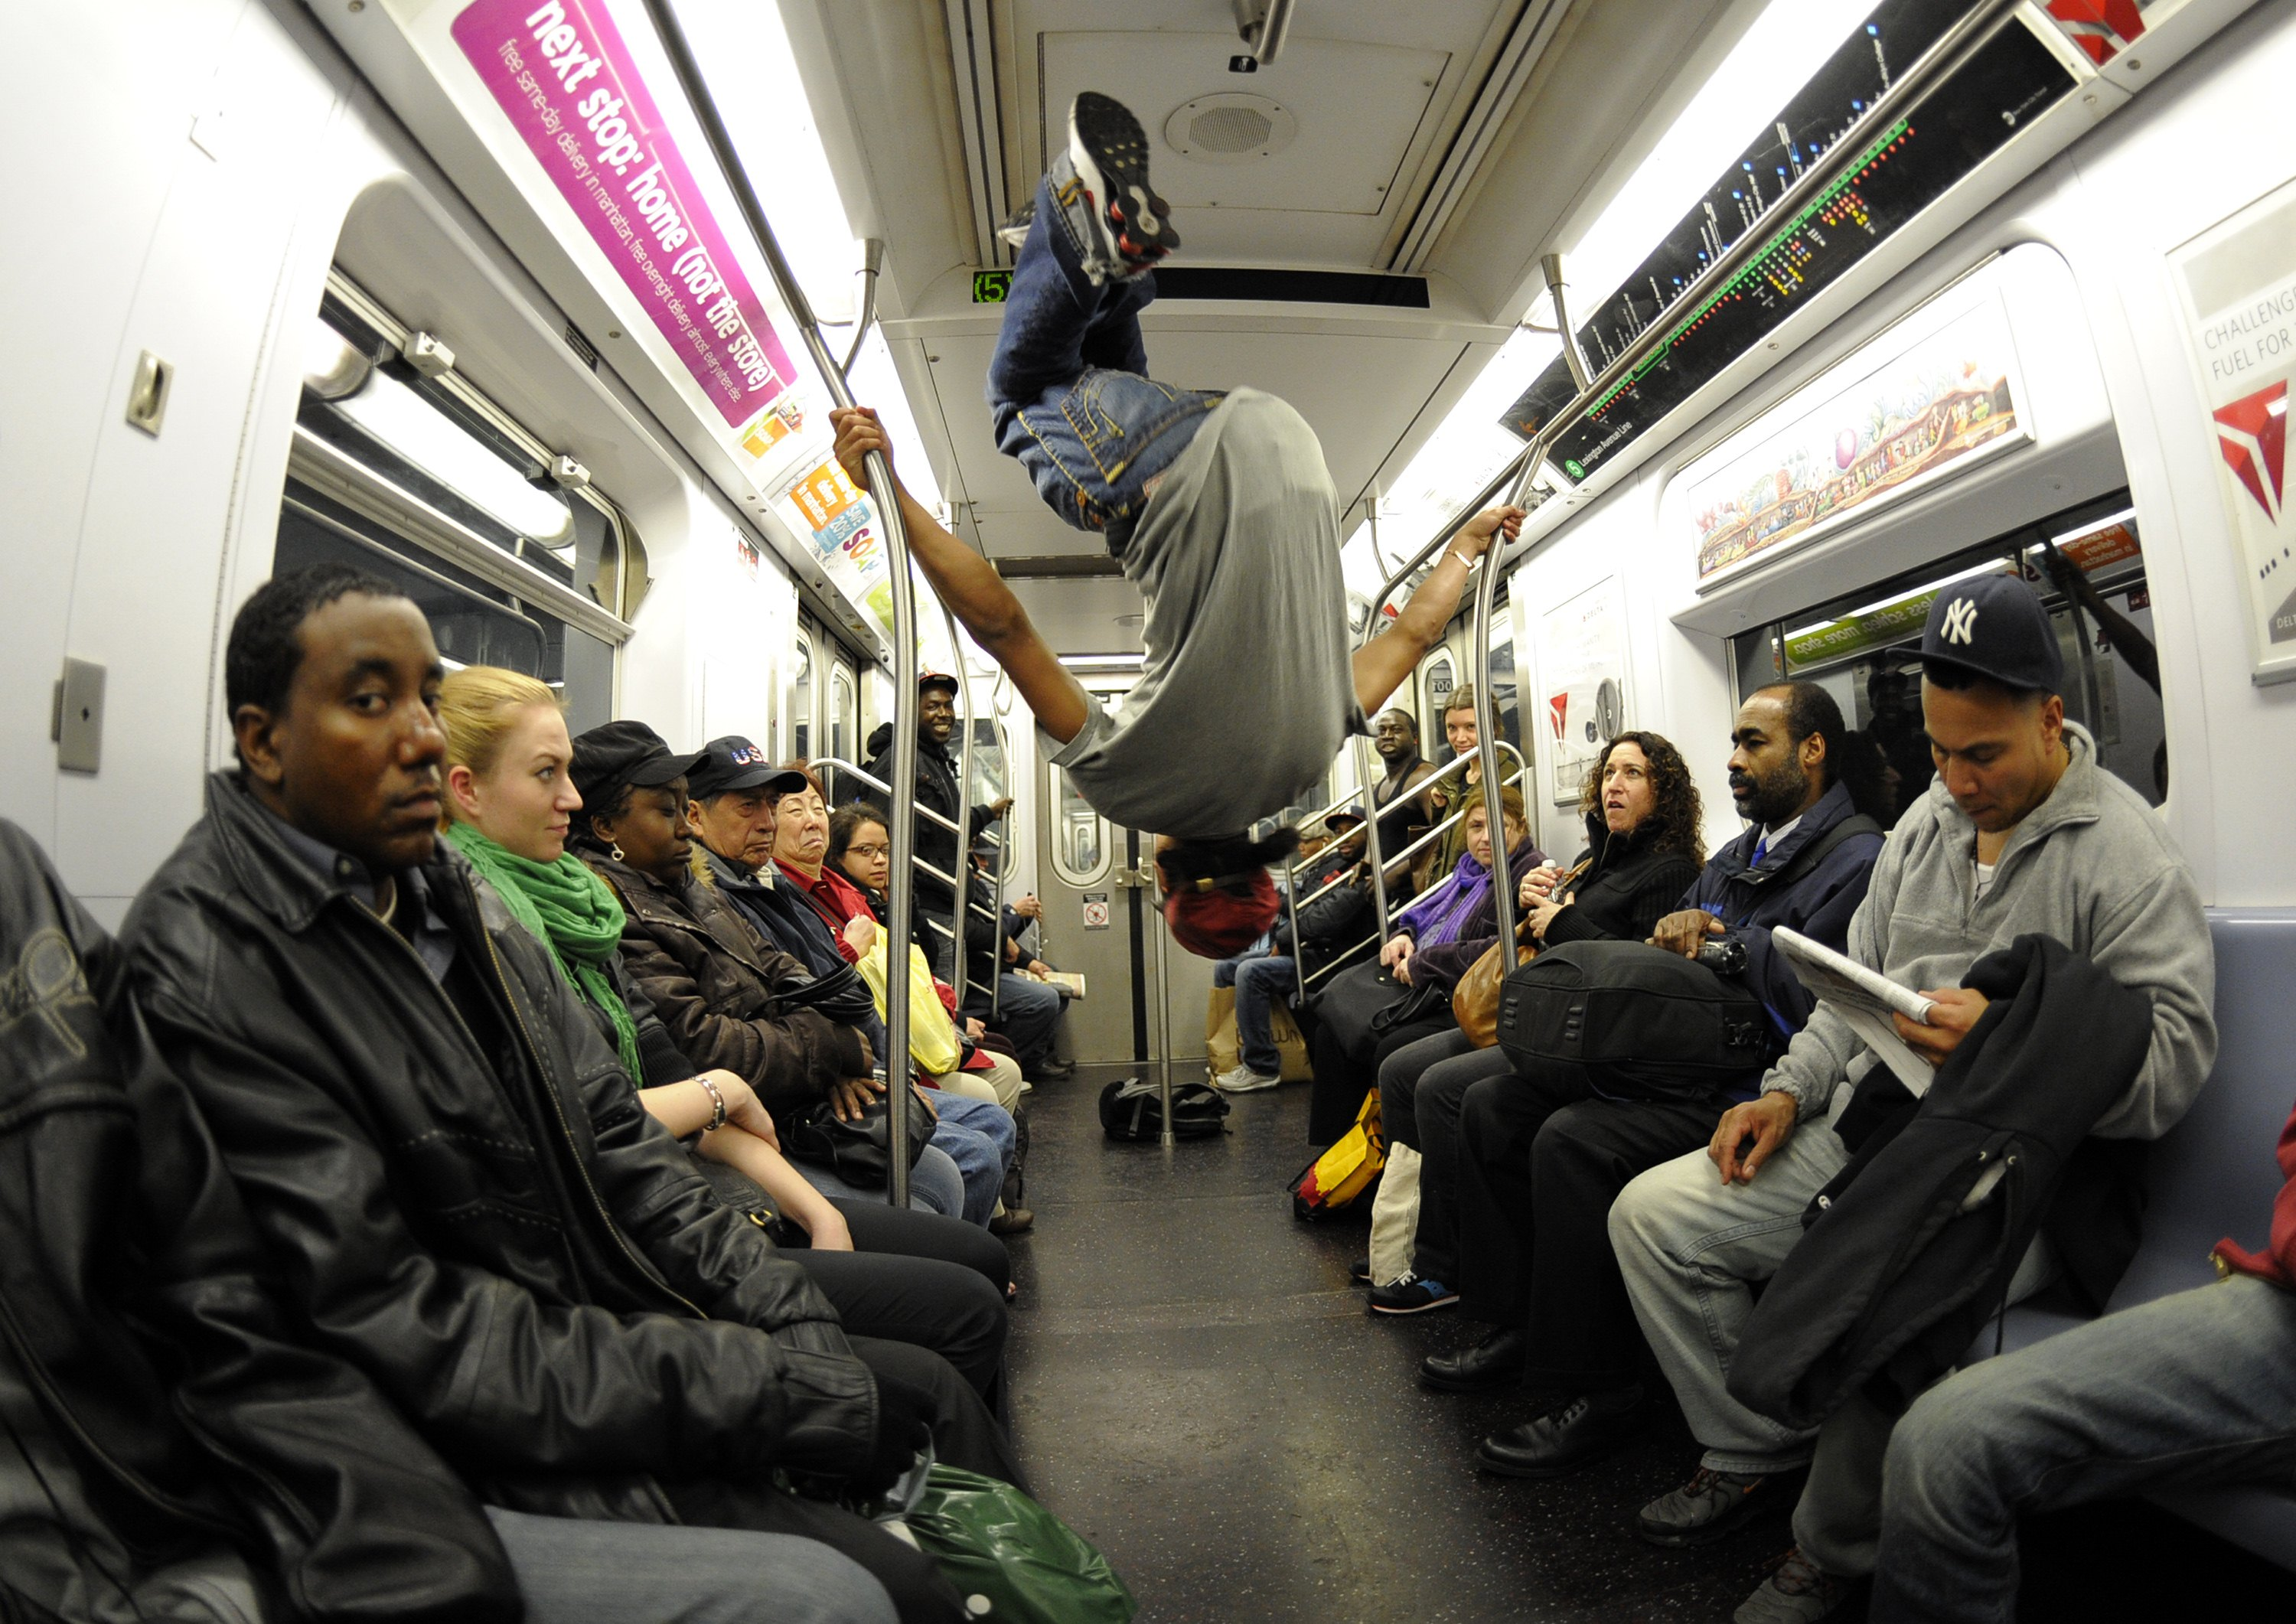 New York City subway dancer Marcus Walden (Mr. Wiggles) performs with other members of his crew on Nov. 23, 2010